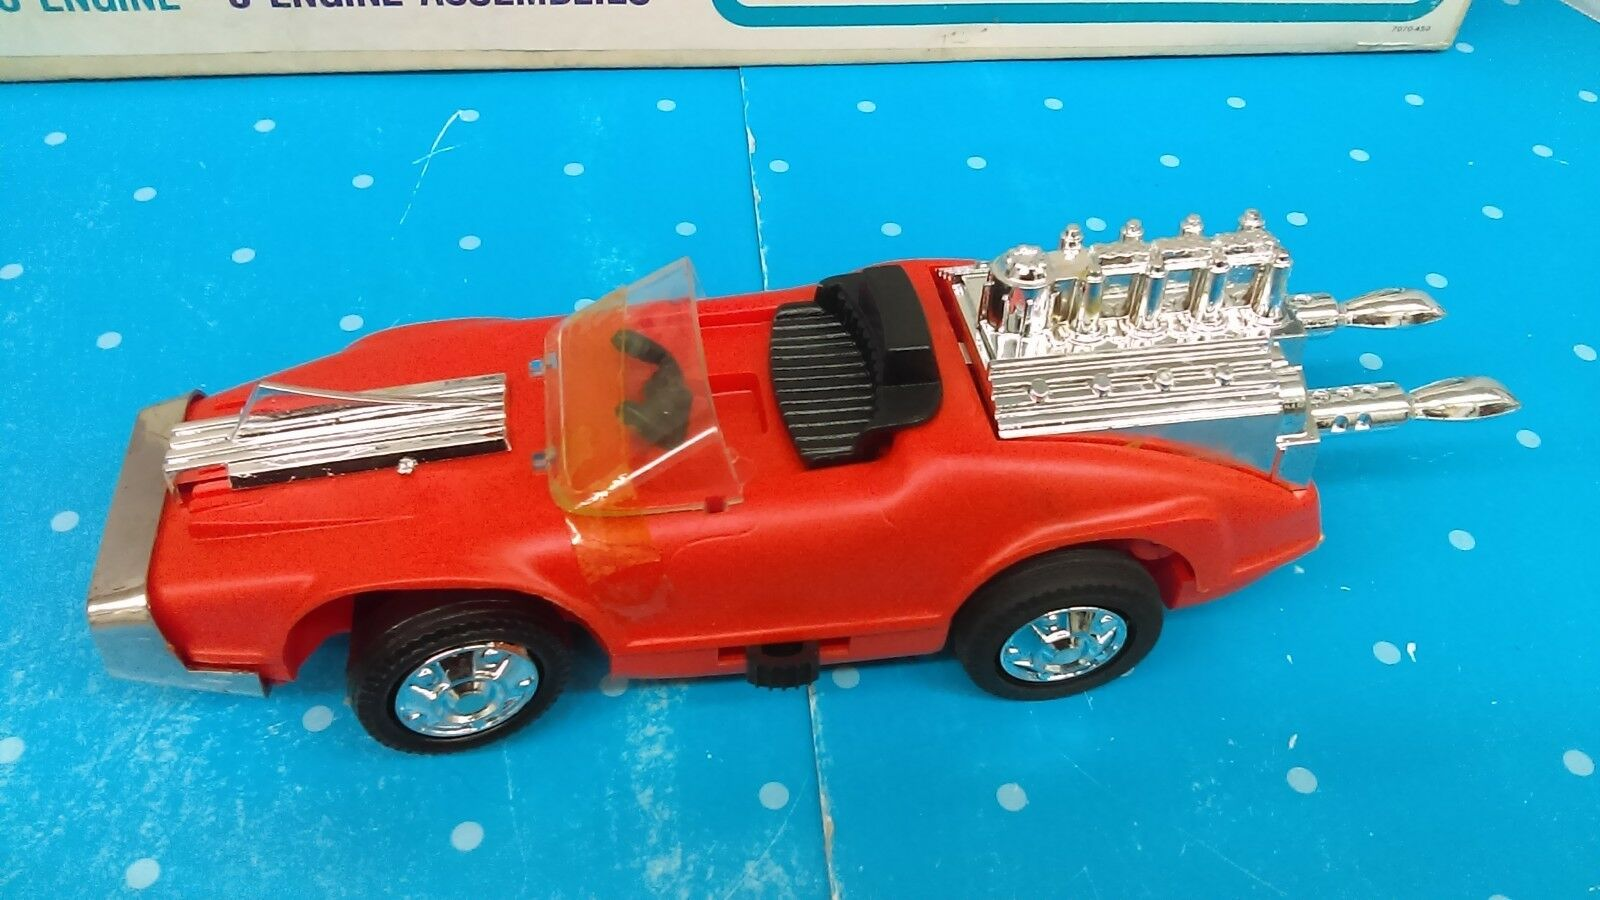 1967 Remco Swapmobile Gift Set Battery Operated Operated Operated MIB NOS Never Used c3af90